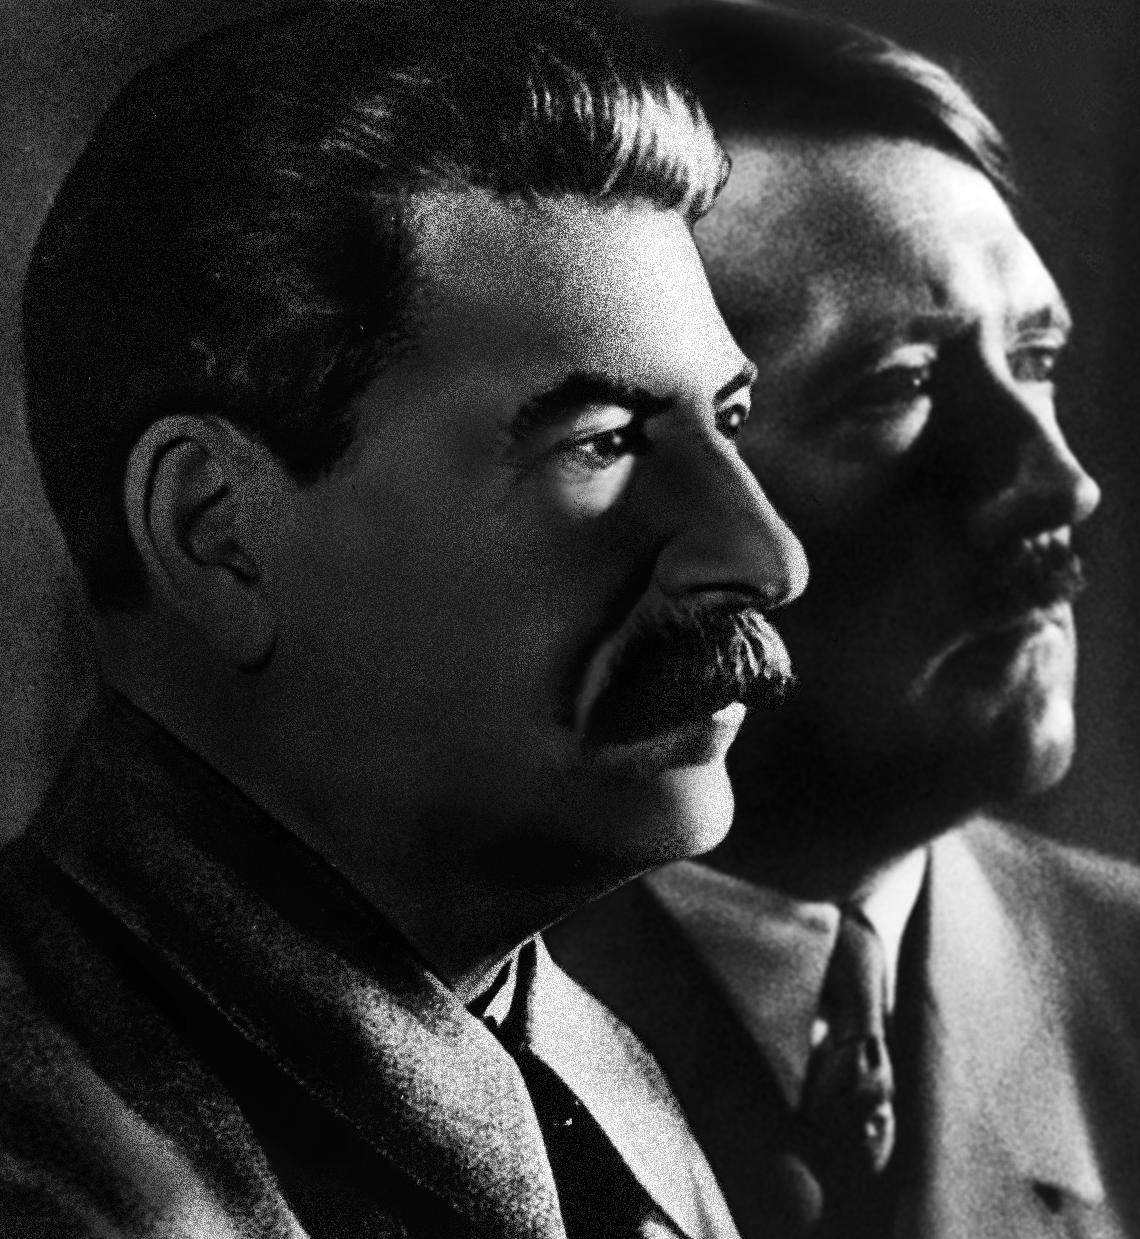 compare hitler and stalin essays